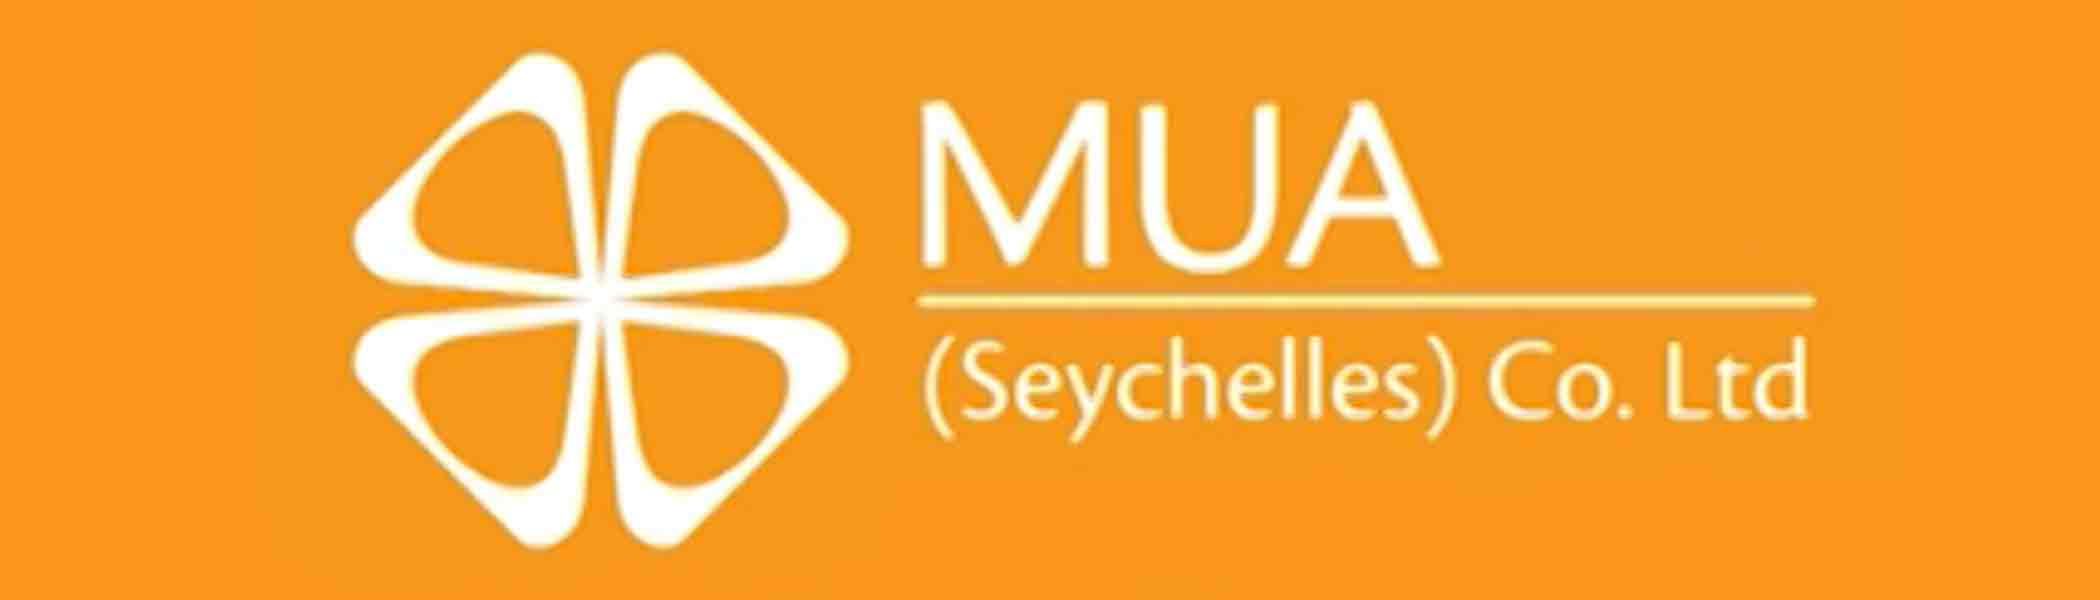 mua, Insurance companies in Seychelles Islands